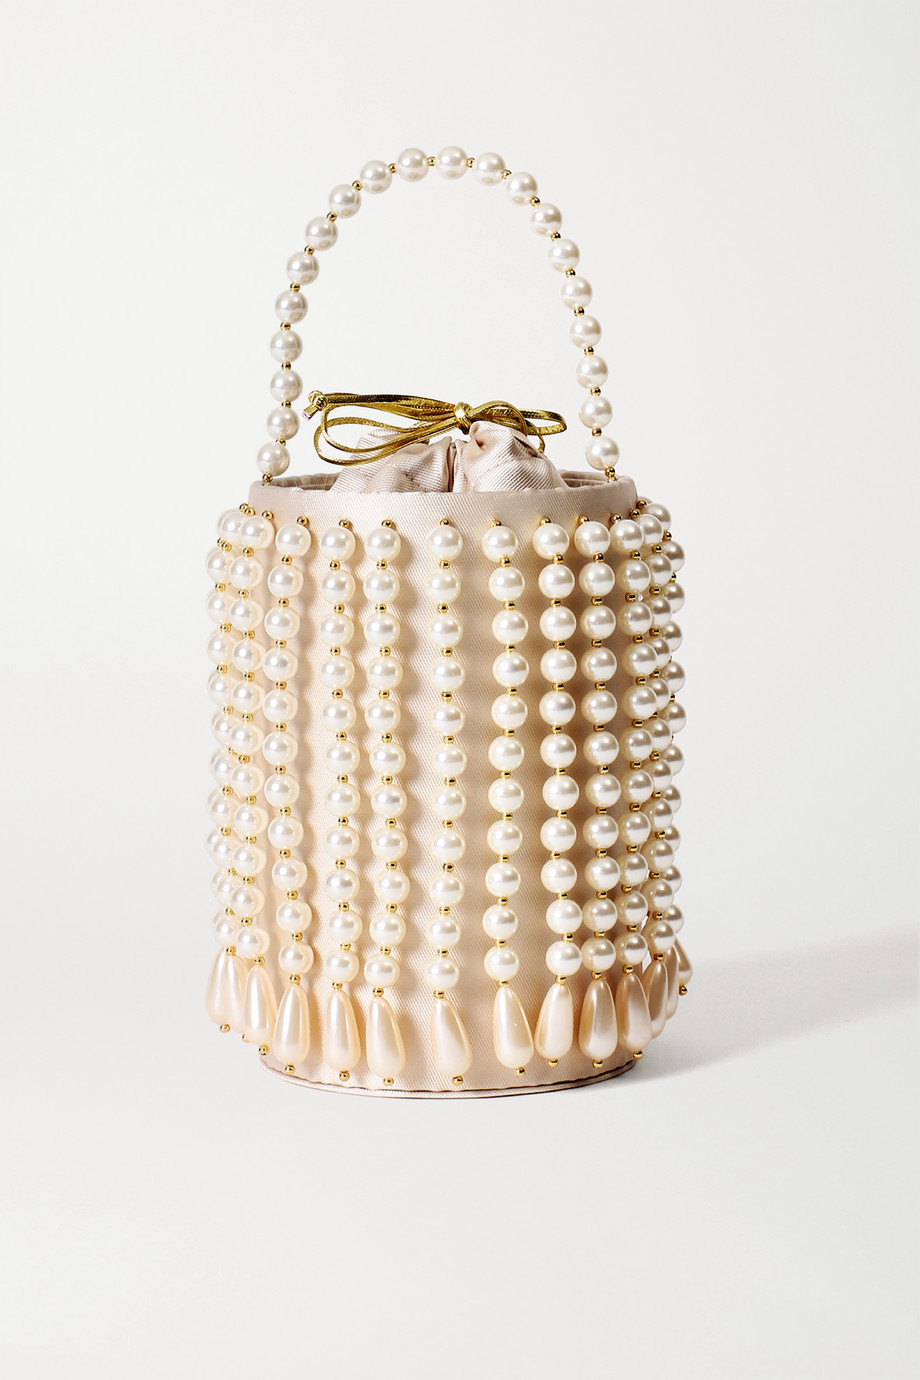 Vanina La Comedie embellished satin-twill and gold-tone tote